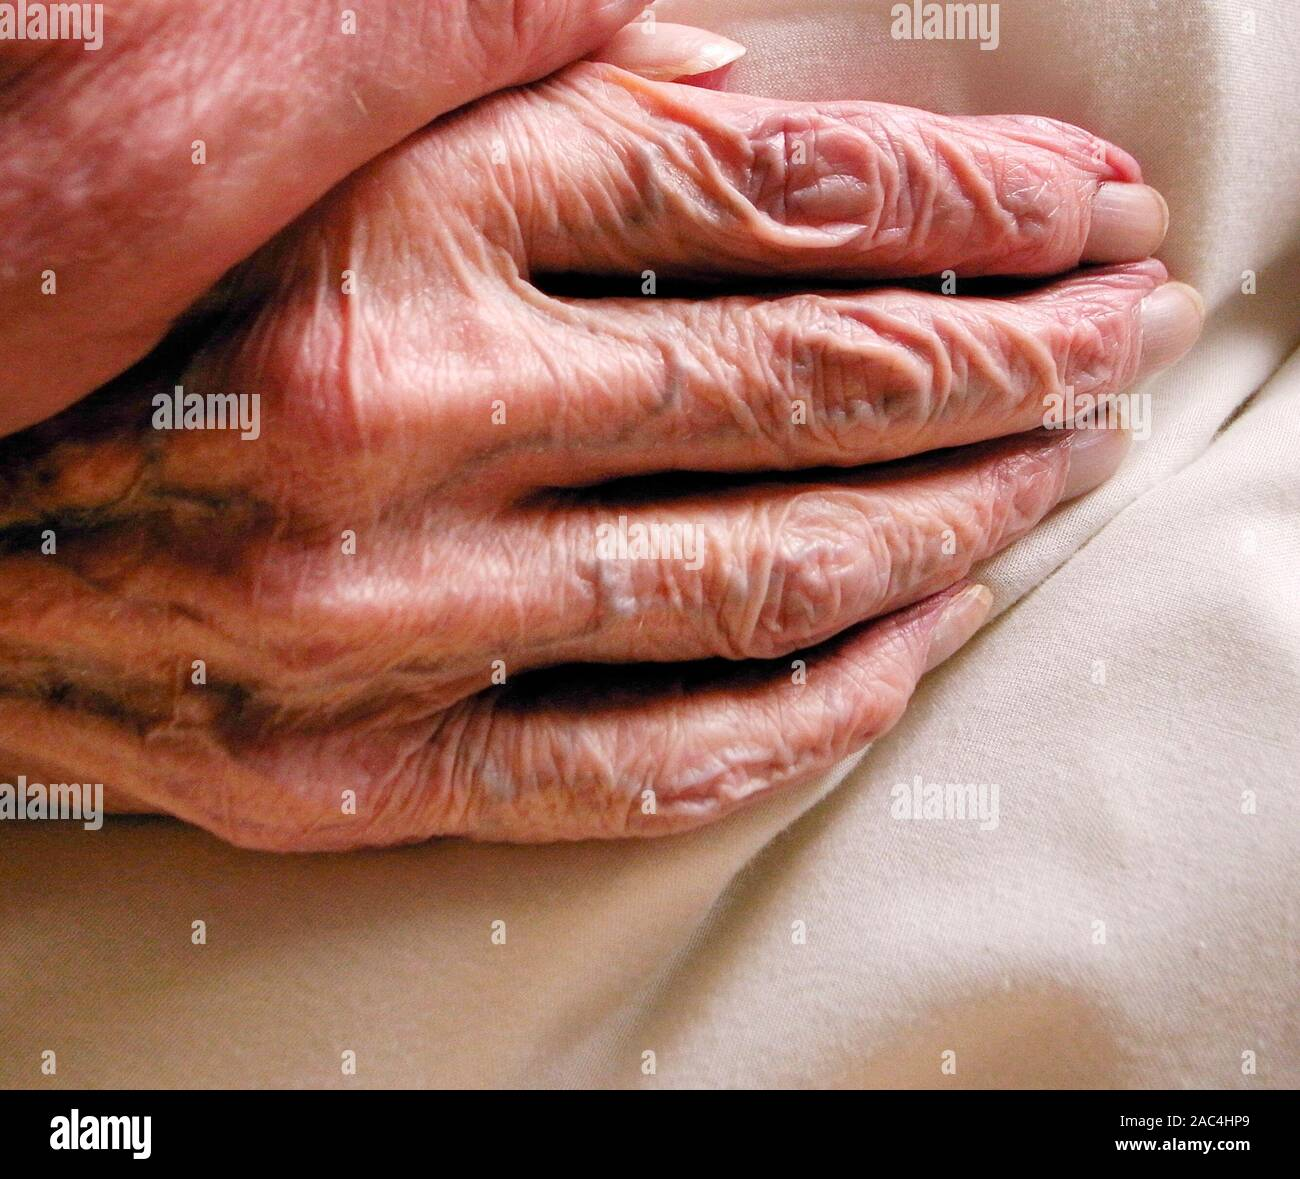 AJAXNETPHOTO. GOSPORT, ENGLAND. - HAND OF OLD AGE - WRINKLED SKIN ON THE HAND OF OLD AGE. ELDERLY PERSON IN CARE HOME.PHOTO:JONATHAN EASTLAND/AJAX REF:GR2 111006 12785 Stock Photo